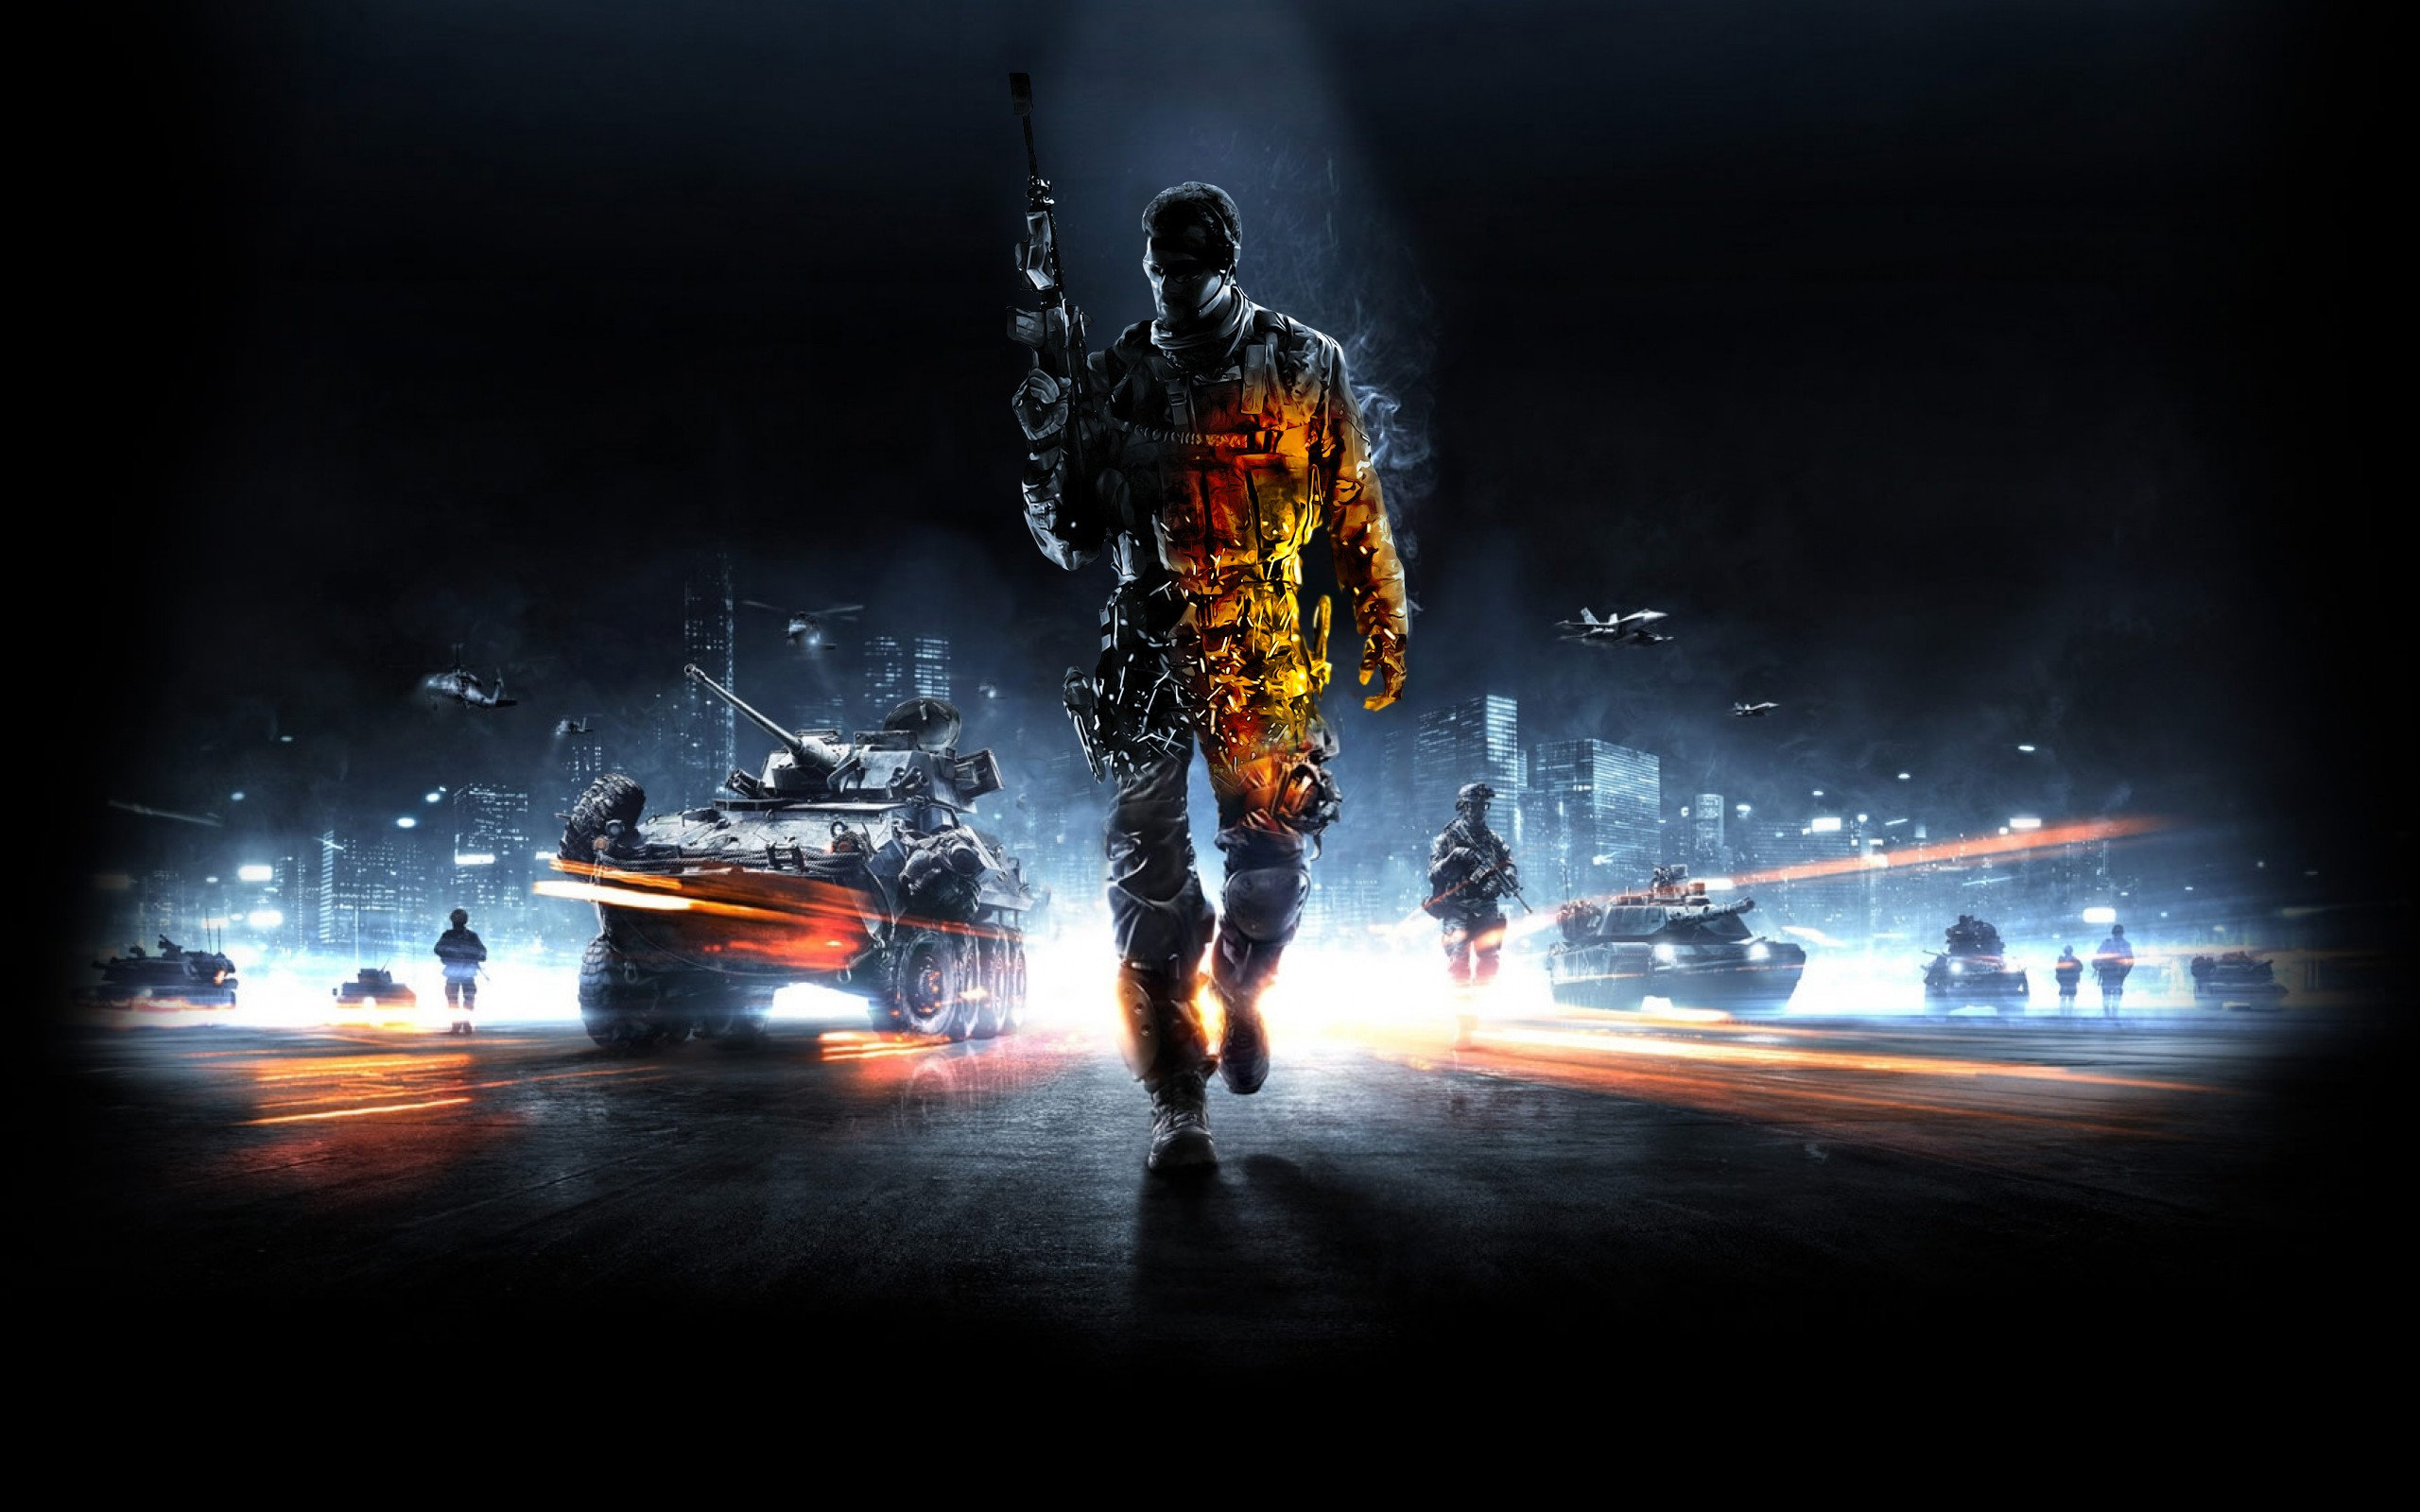 bf3 wallpaper - photo #22